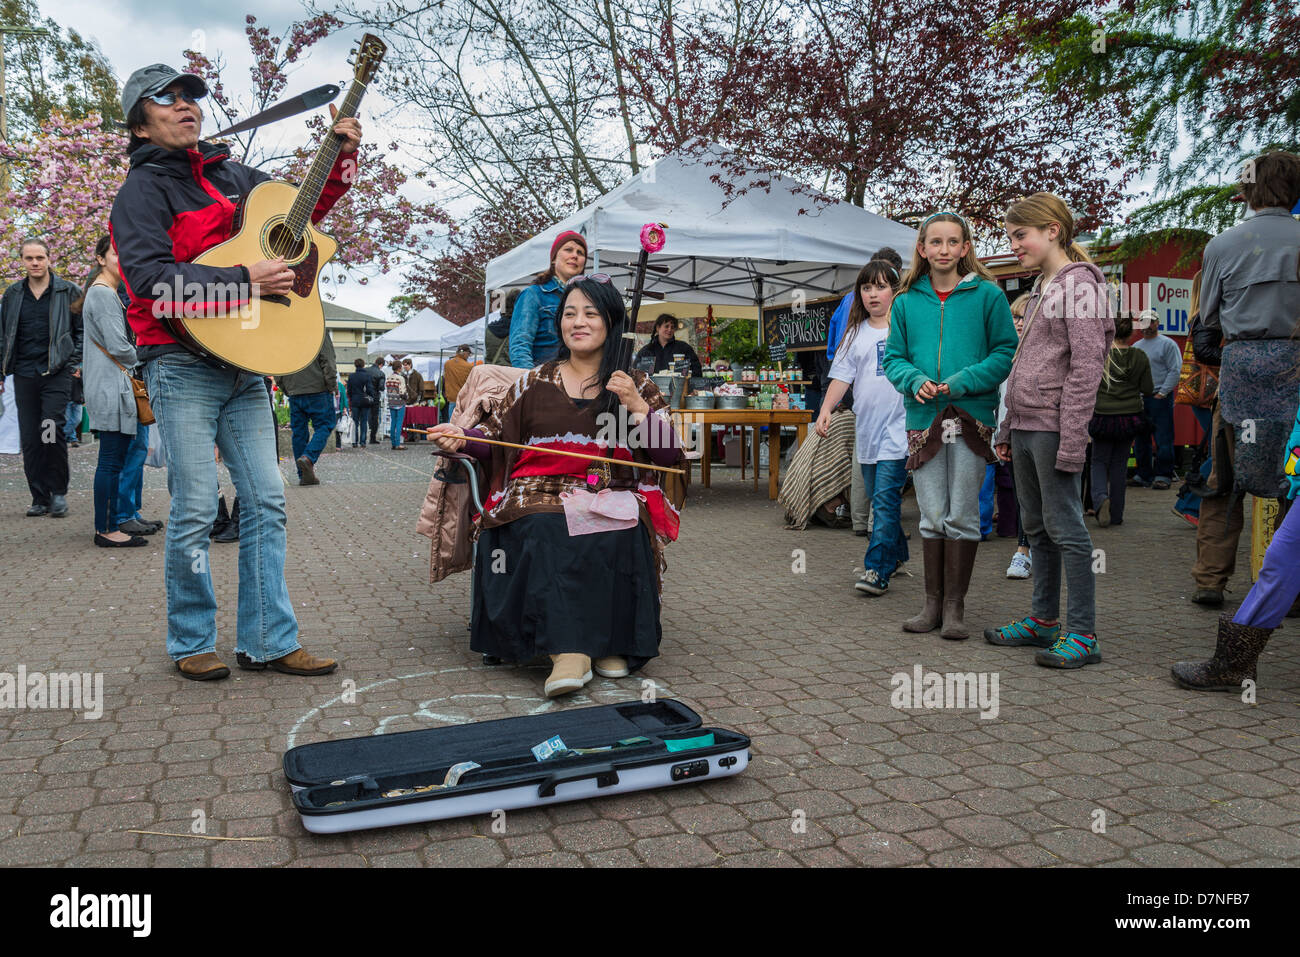 Buskers at the Saturday Market, Salt Spring Island, British Columbia, Canada - Stock Image